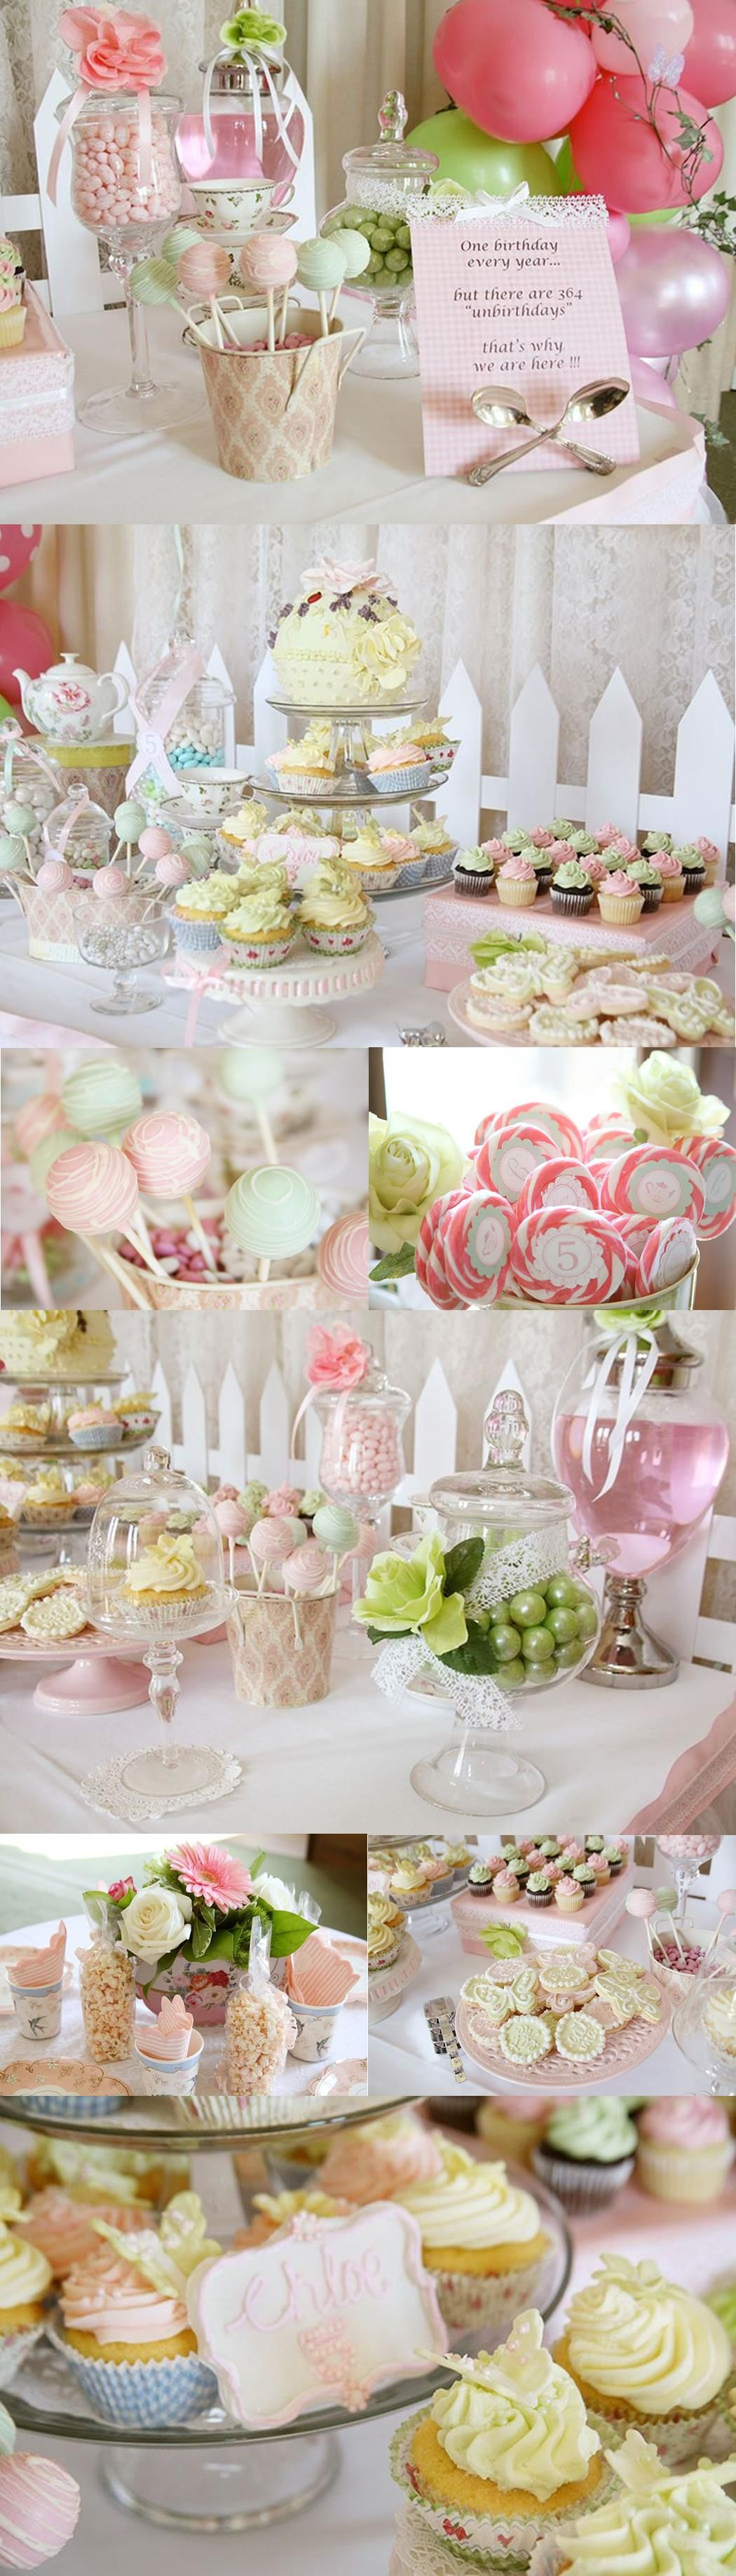 Tea party ideas ....///www.annmeyersignatureevents.com | Food ...